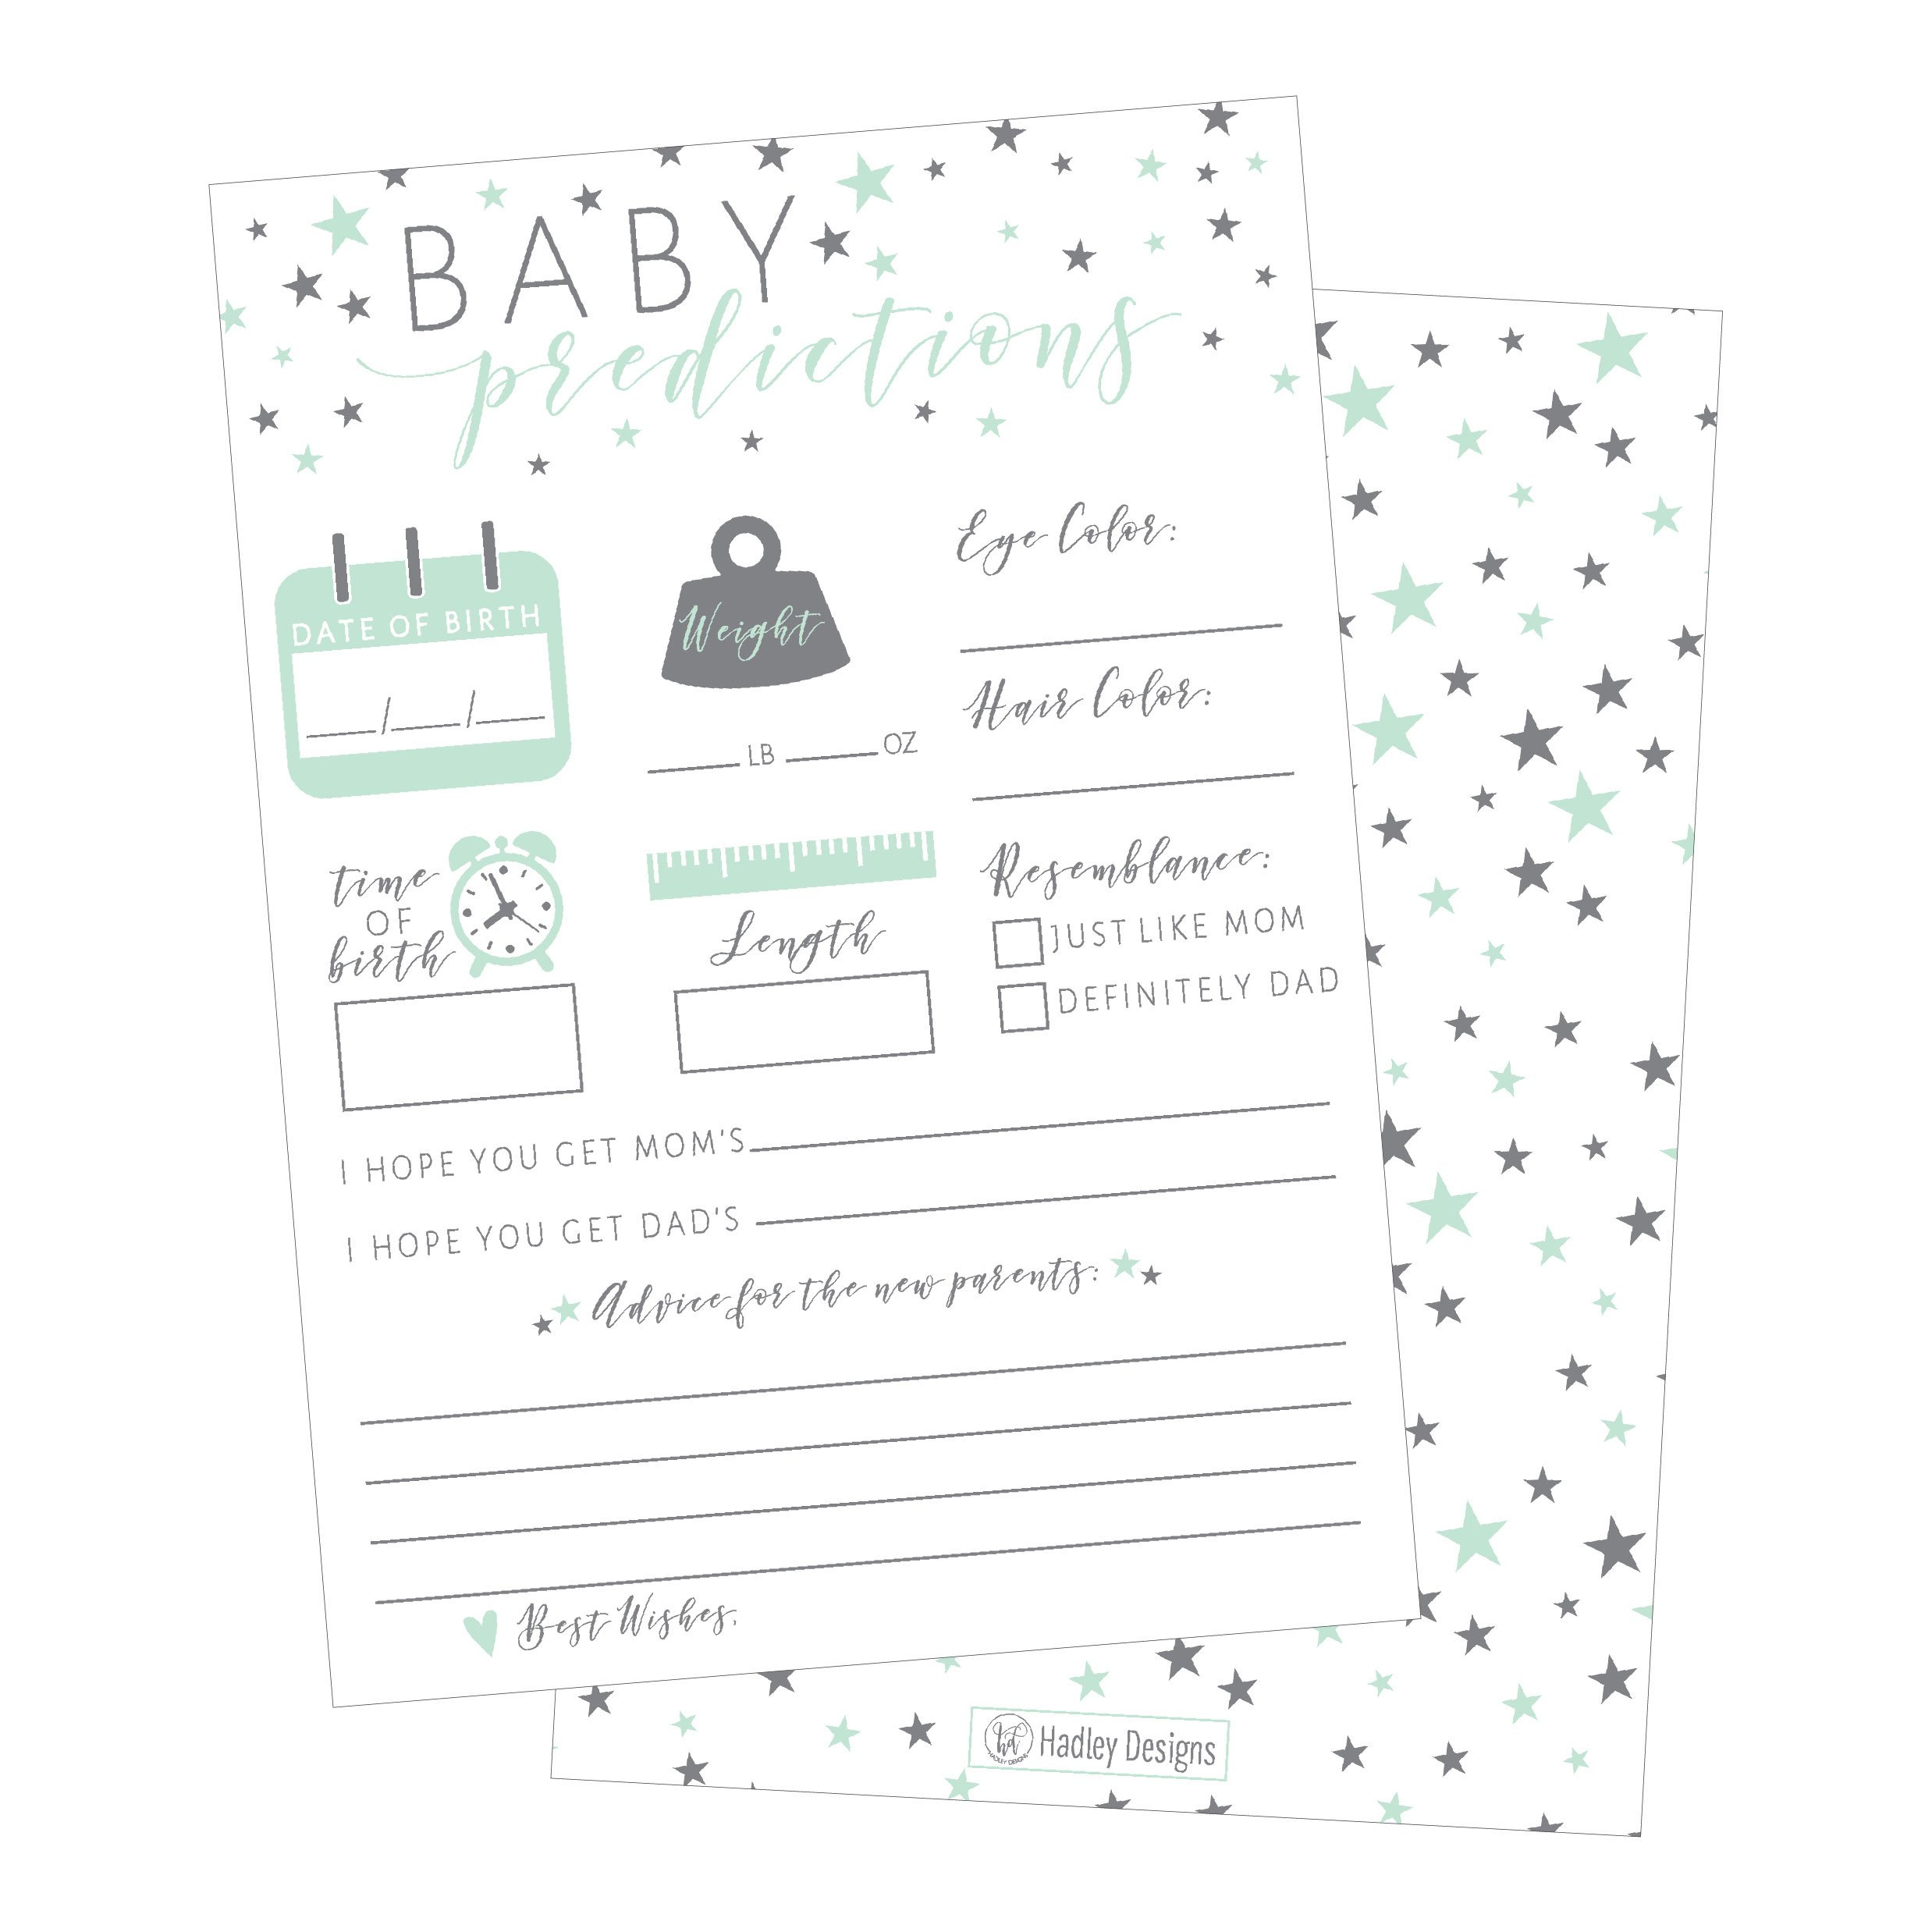 50 Mint Stars Advice and Prediction Cards for Baby Shower Game, New Mom & Dad Card or Mommy & Daddy To Be, For Girl or Boy Babies New Parent Message Advice Book, Fun Gender Neutral Shower Party Favors